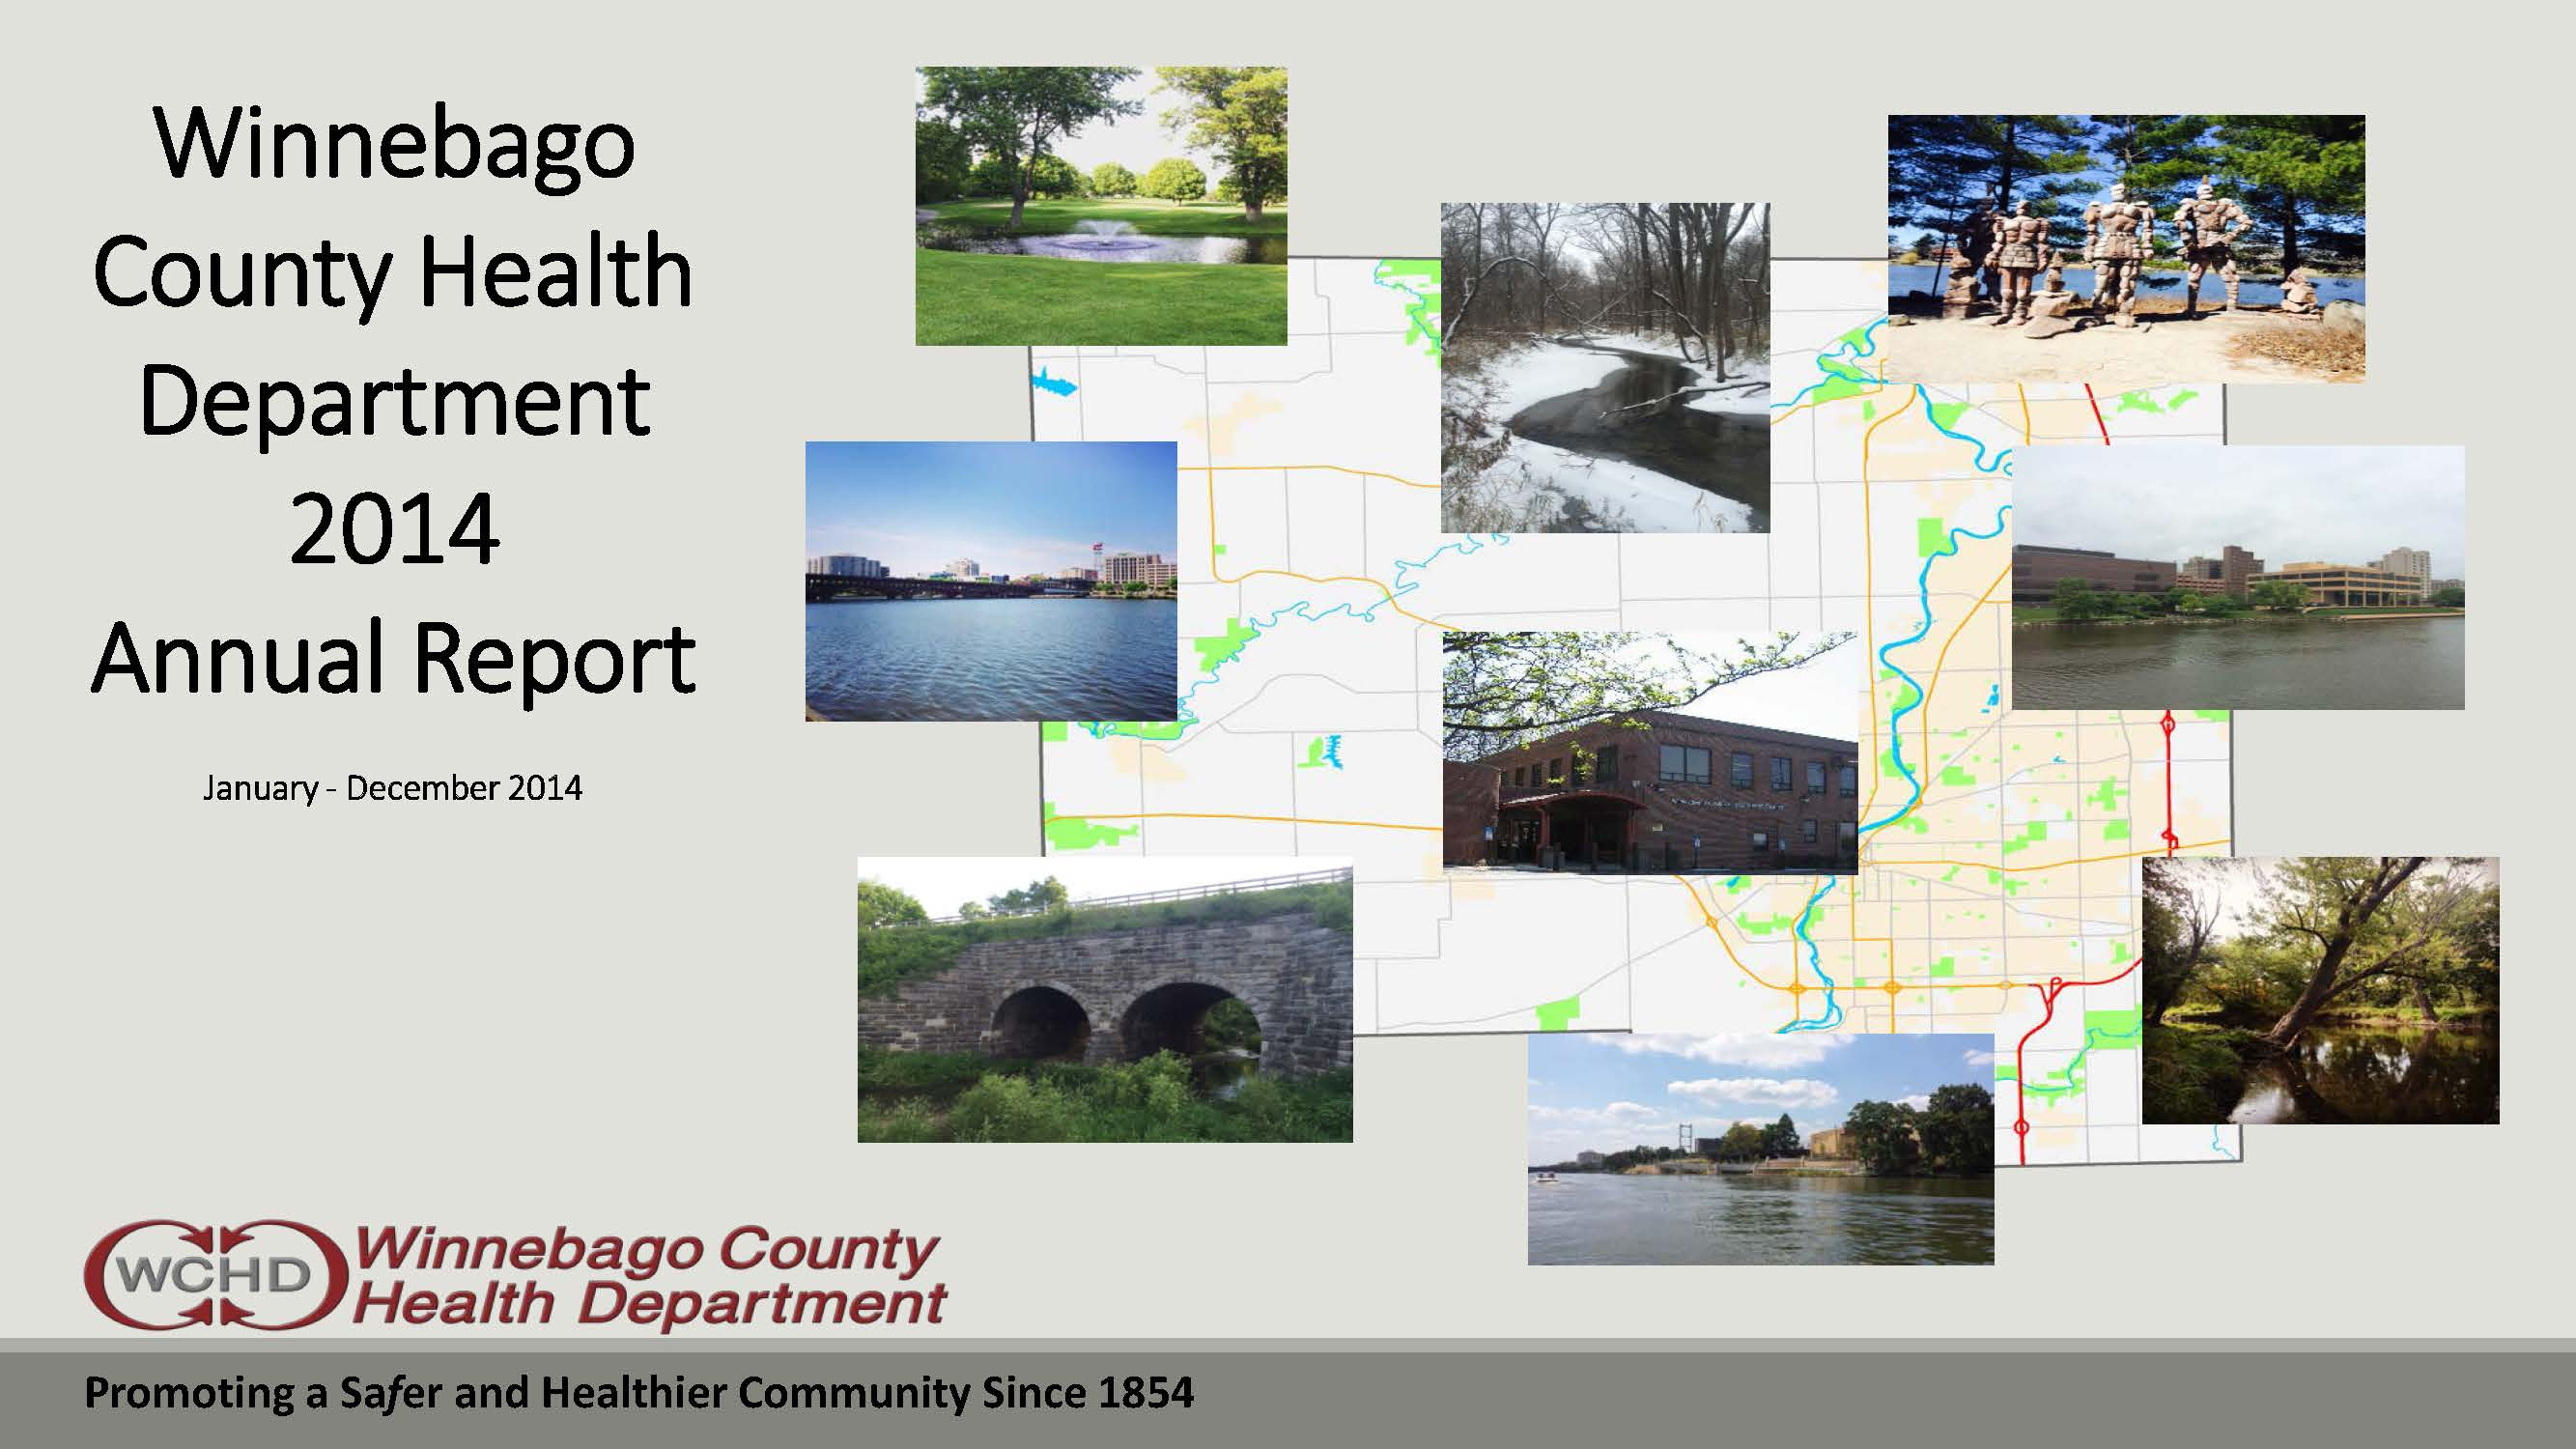 2014 Winnebago County Health Department Annual Report Final Picture Page 01